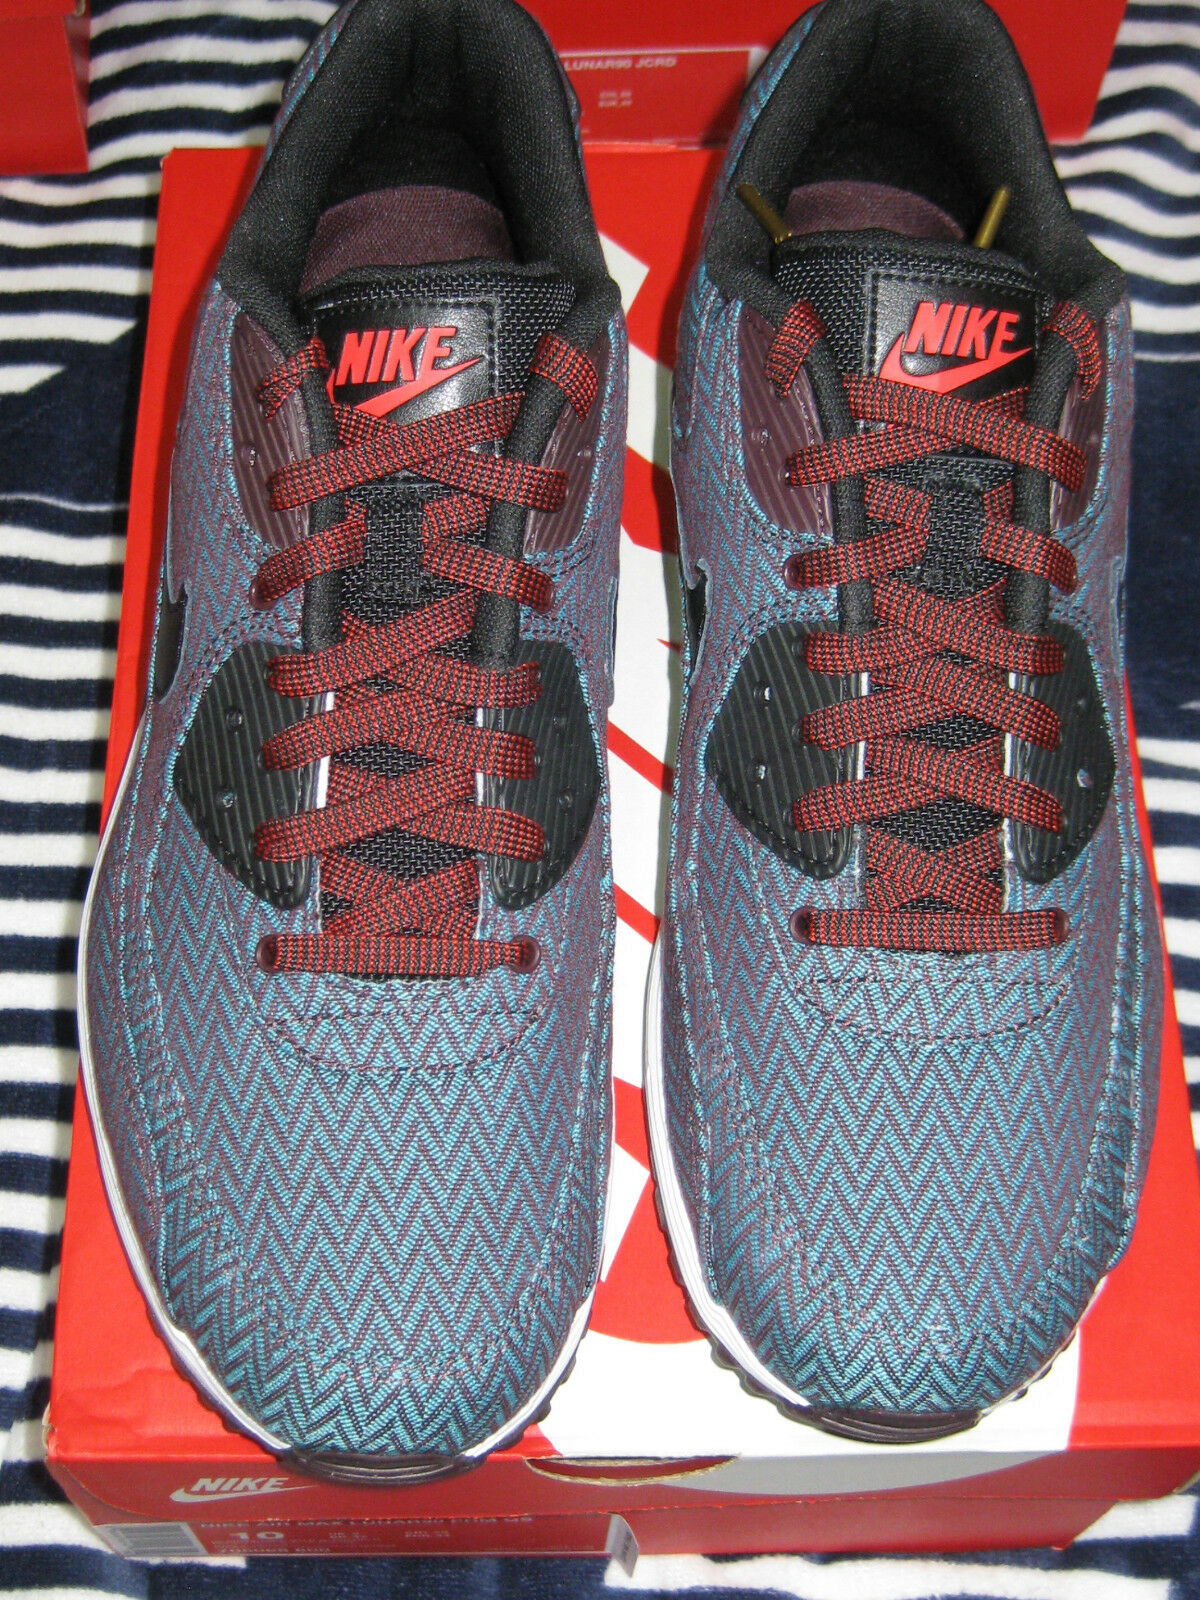 the latest 73f44 852e1 ... Nike Kobe 9 Low ID ID ID Promo Sample Flyknit Multicolour HTM Racer 10  11 Elite ...